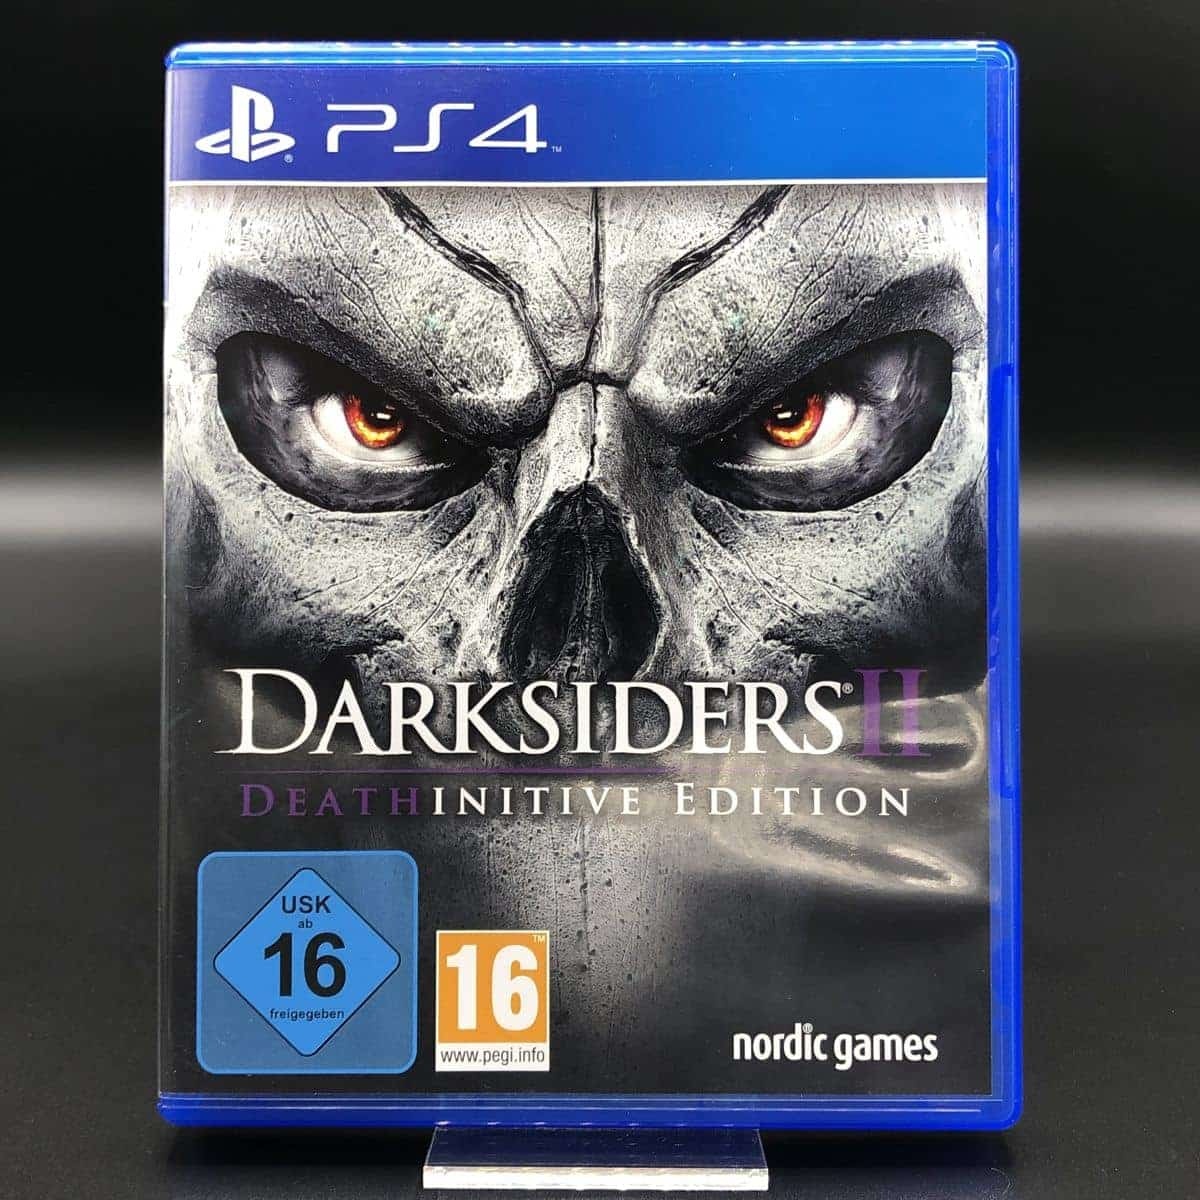 PS4 Darksiders II (Deathinitive Edition) (Sehr gut) Sony PlayStation 4